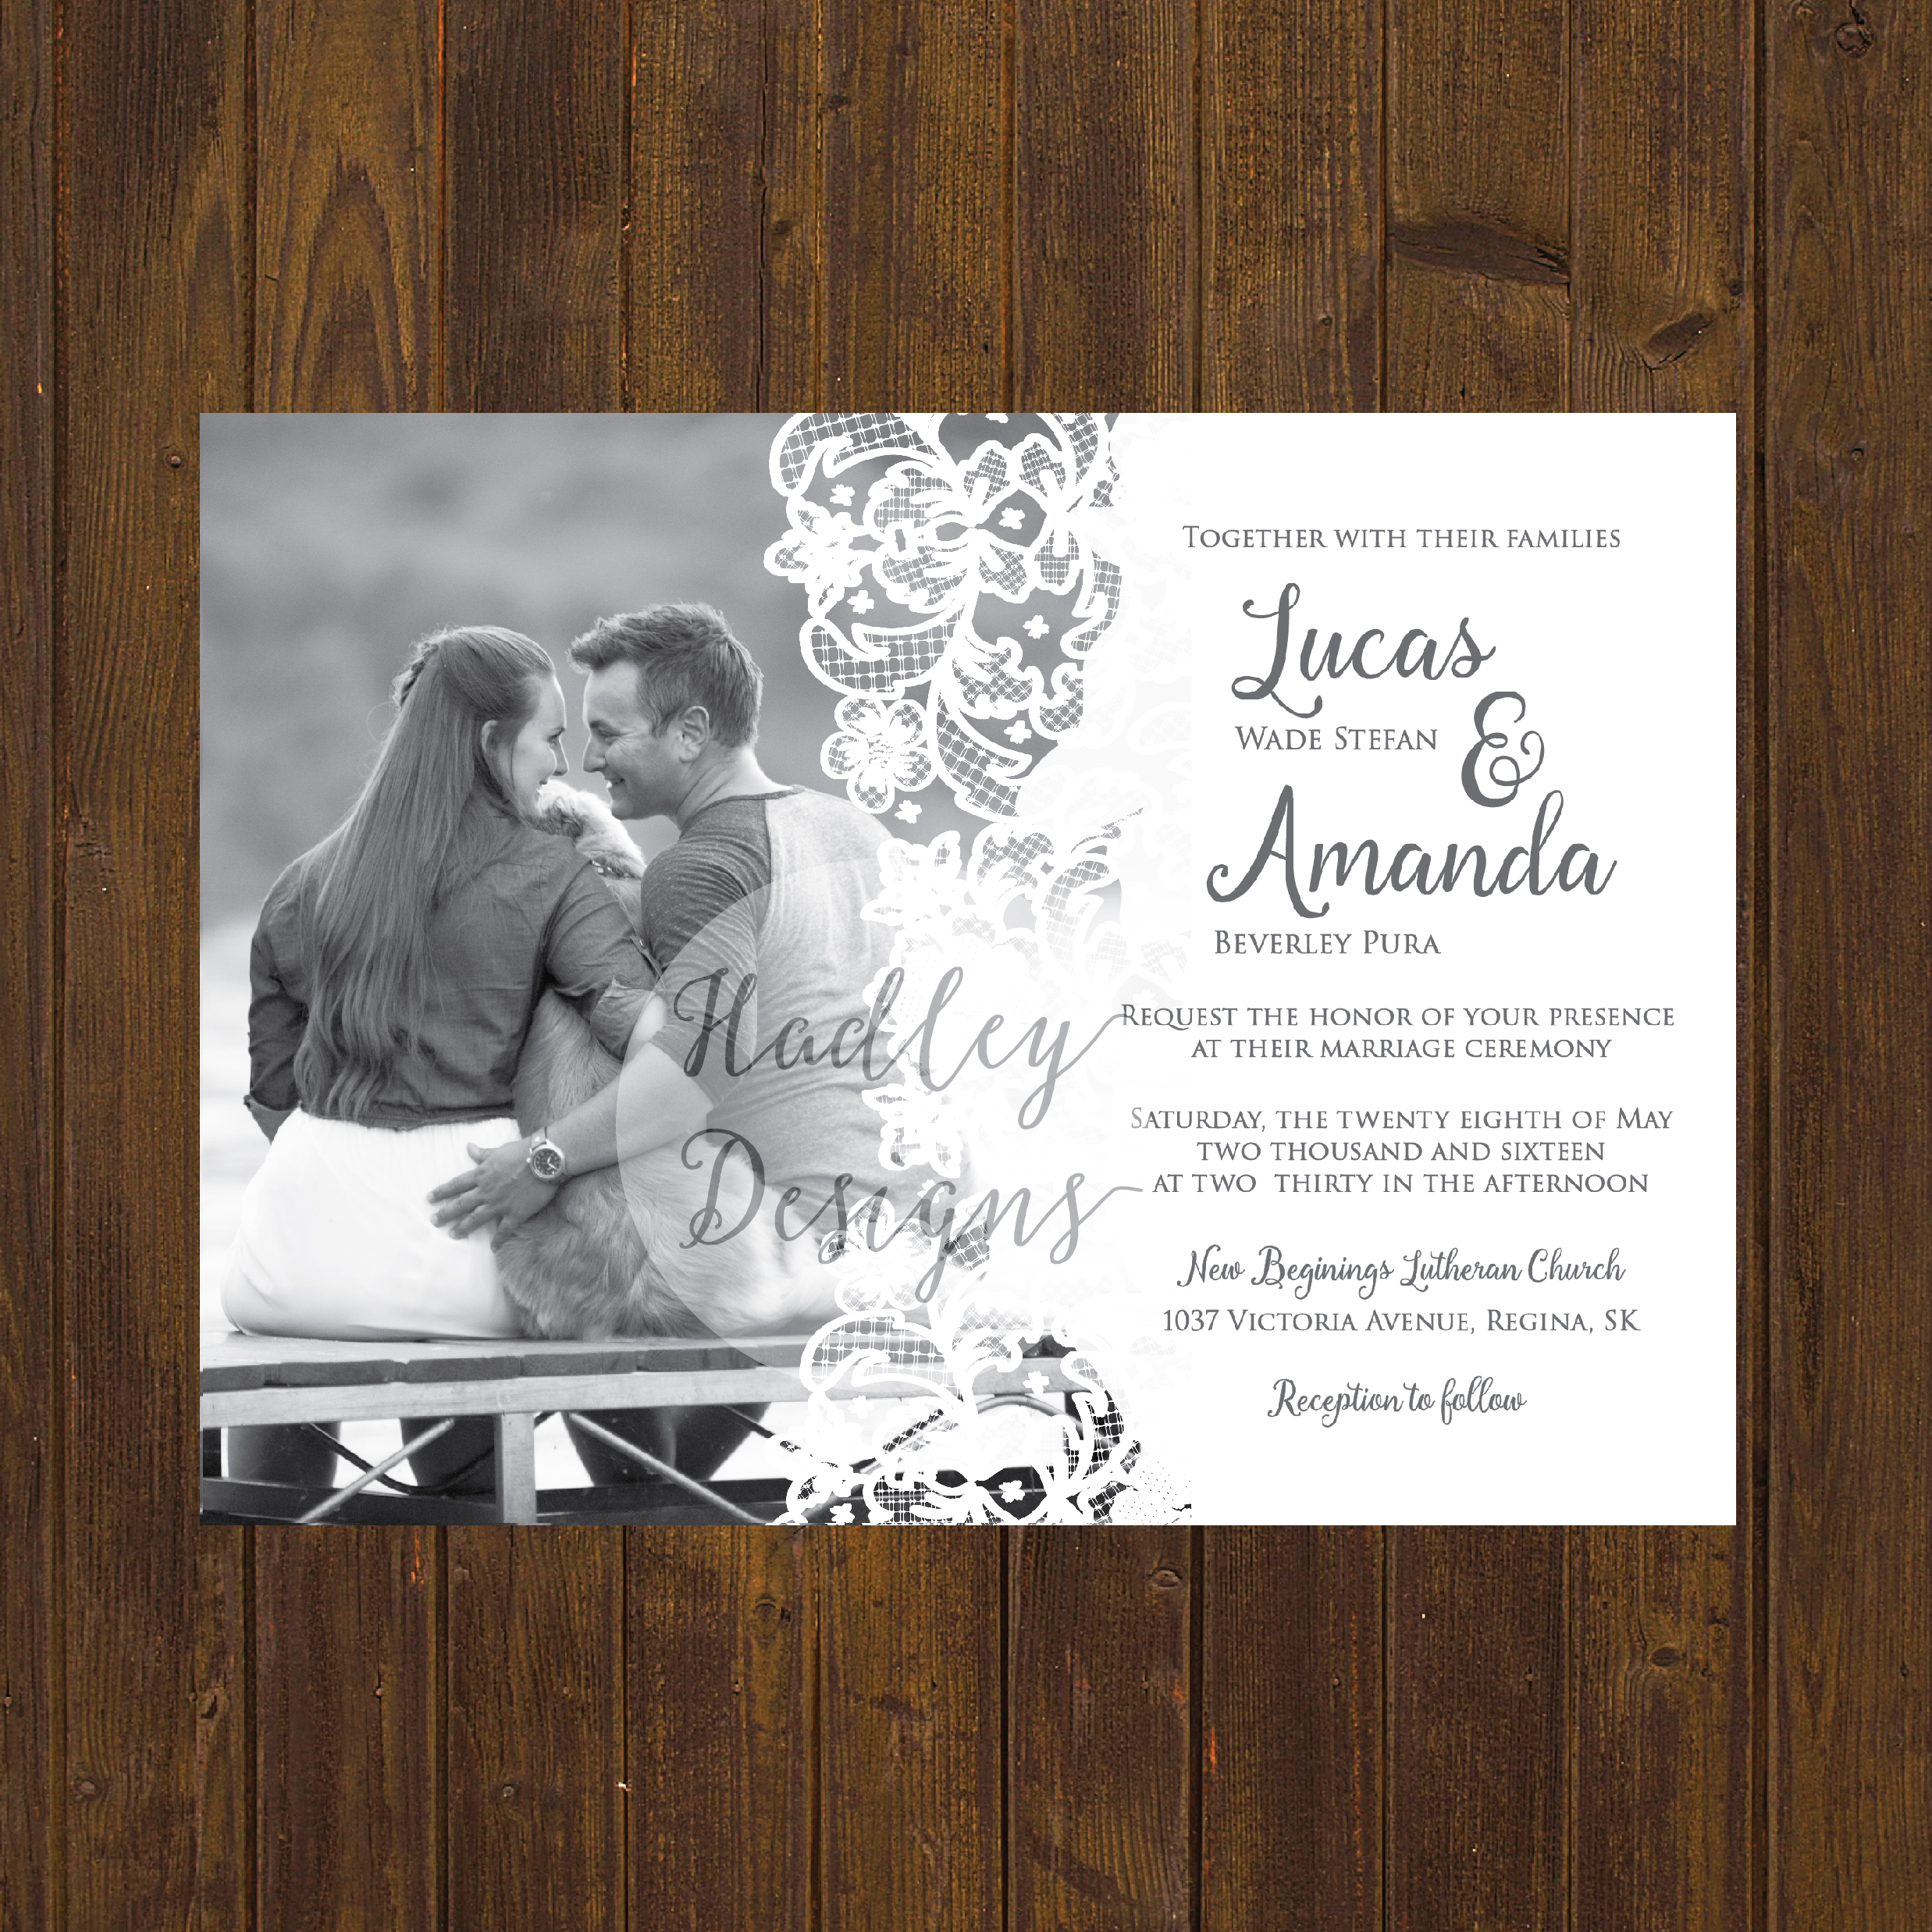 pictures of formal wedding invitations affordable wedding invitations elegant wedding invitations classic wedding invitations formal wedding invitations traditional wedding invitations